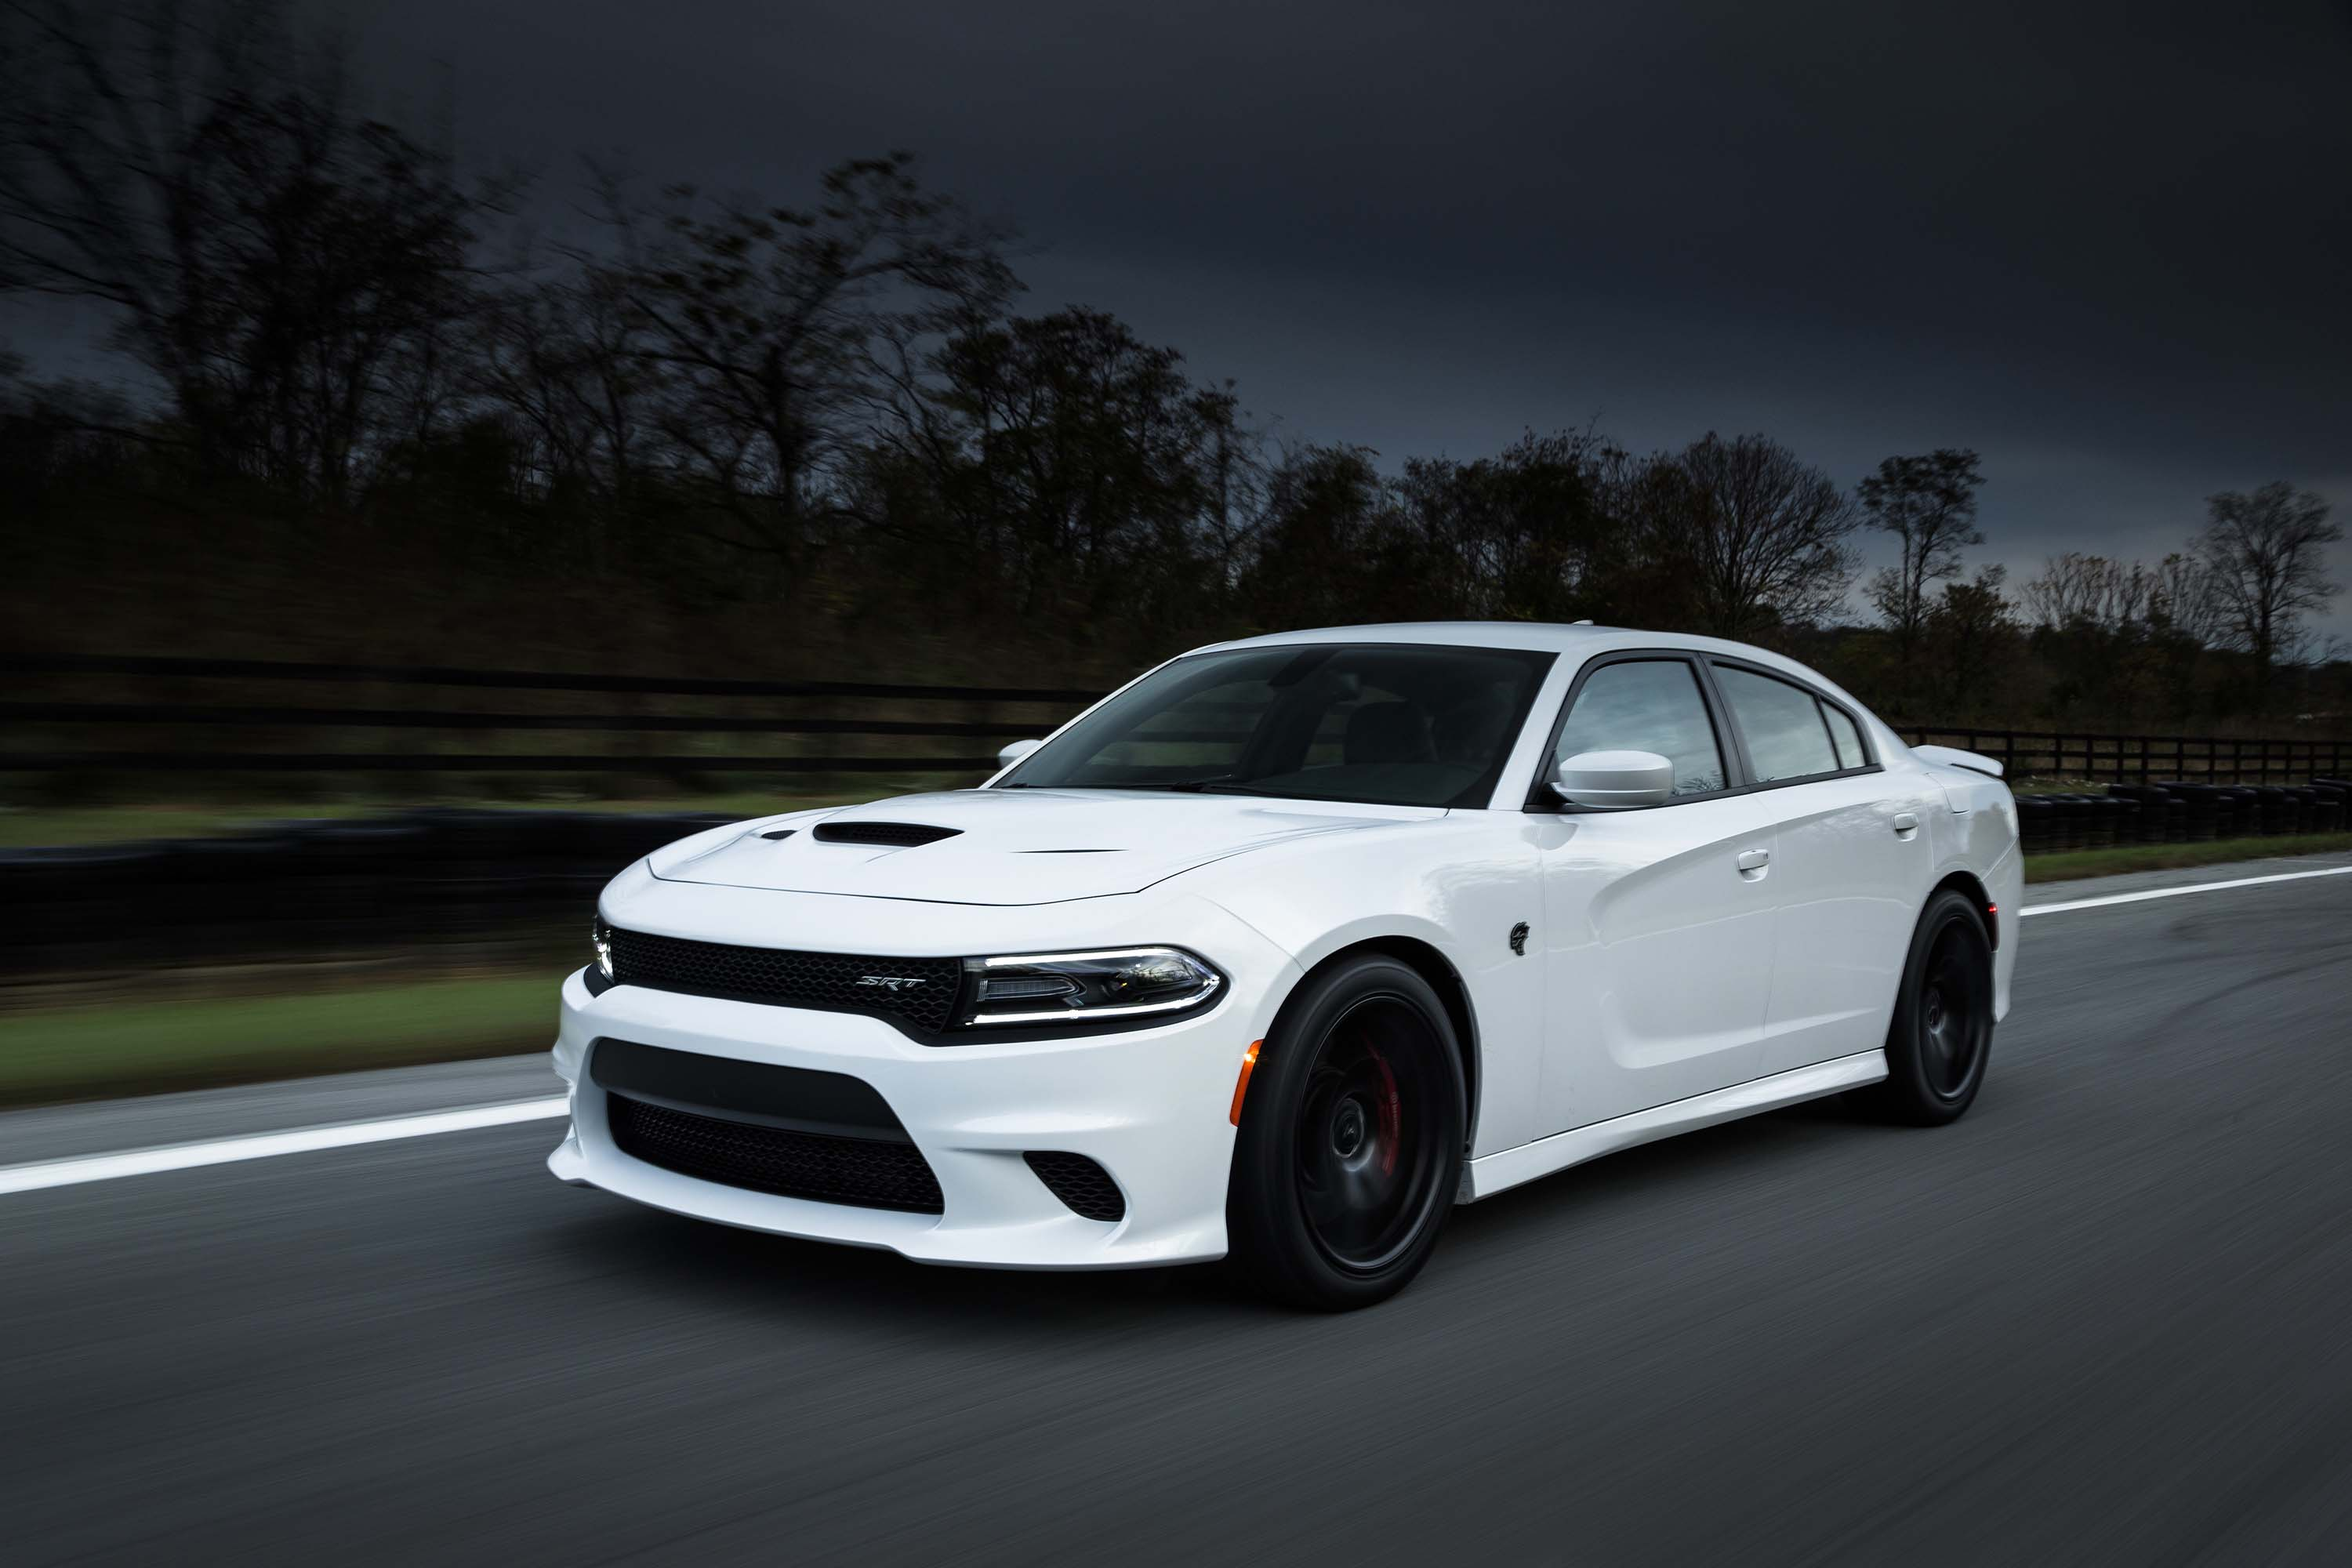 2015 dodge charger srt hellcat iron lion from zion. Black Bedroom Furniture Sets. Home Design Ideas